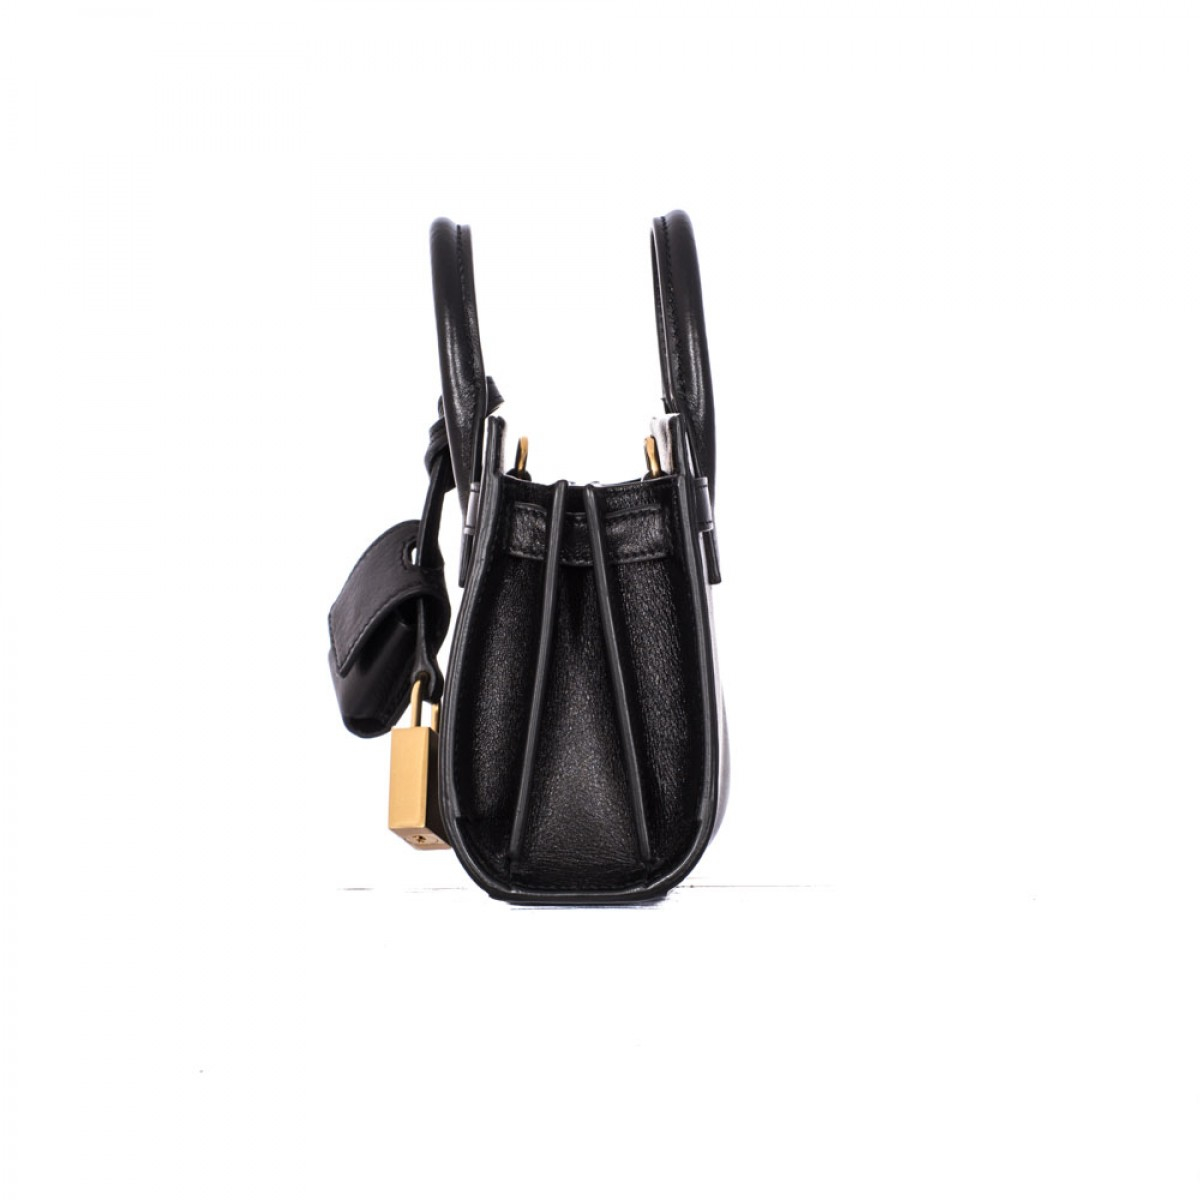 a2b67d62133 Saint Laurent Bag Sale Lyst | IUCN Water